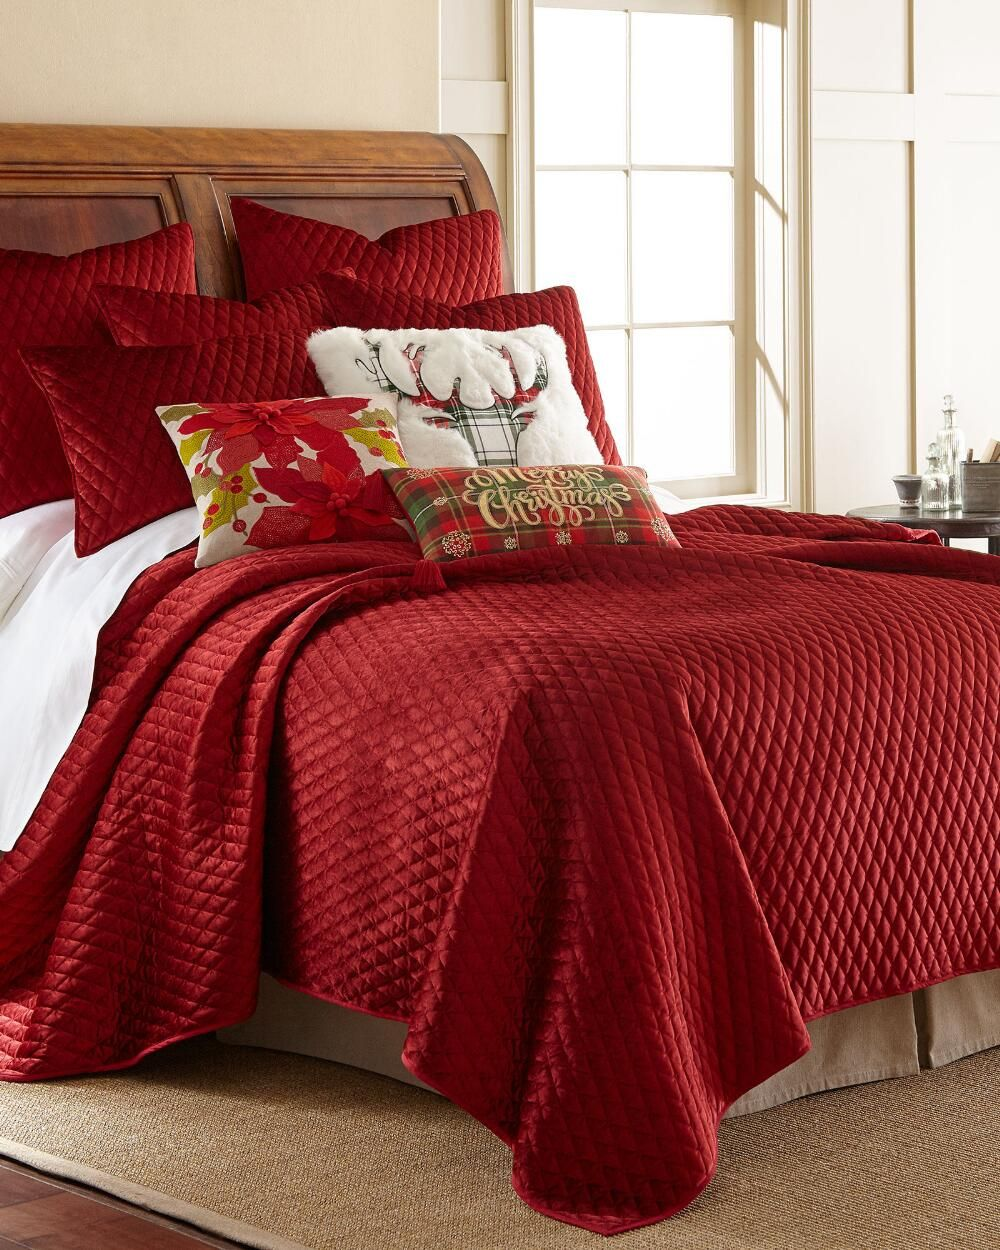 Stein mart bathroom accessories - Exclusively Ours Red Velvet Quilt Bedding Collections Nina Campbell Home Featured Brands Bed Bath